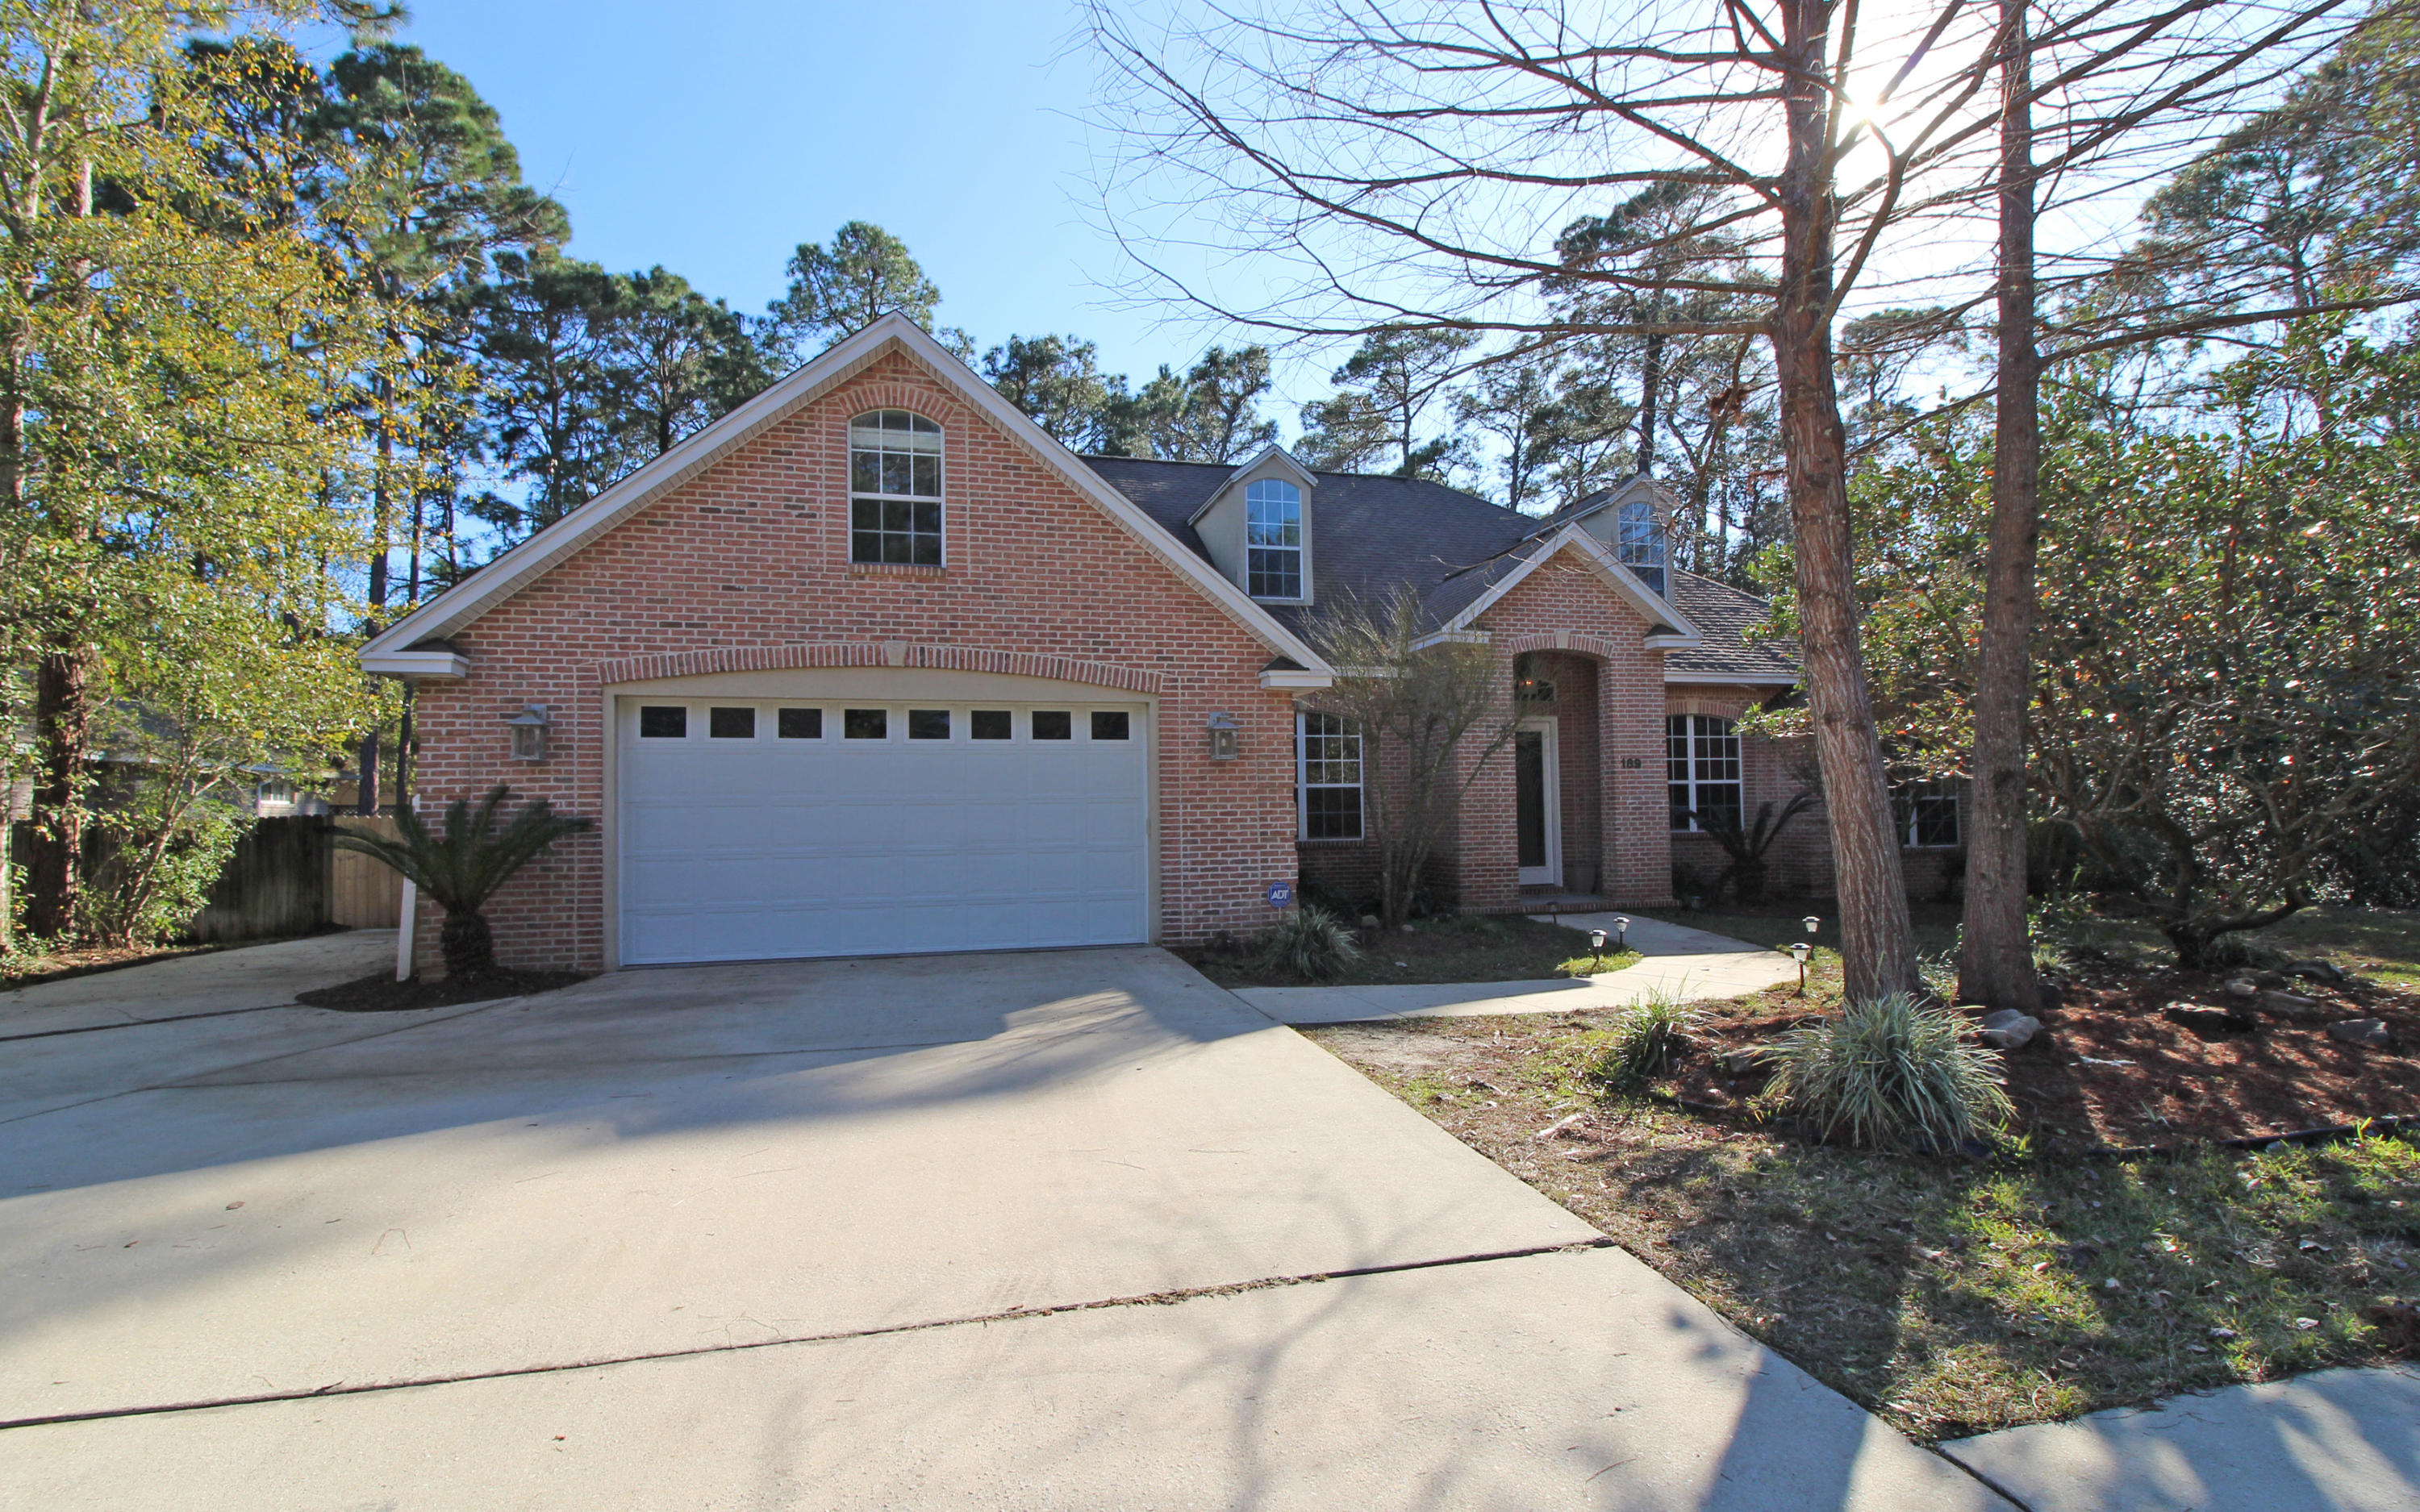 189  Red Maple Way, Niceville, Florida